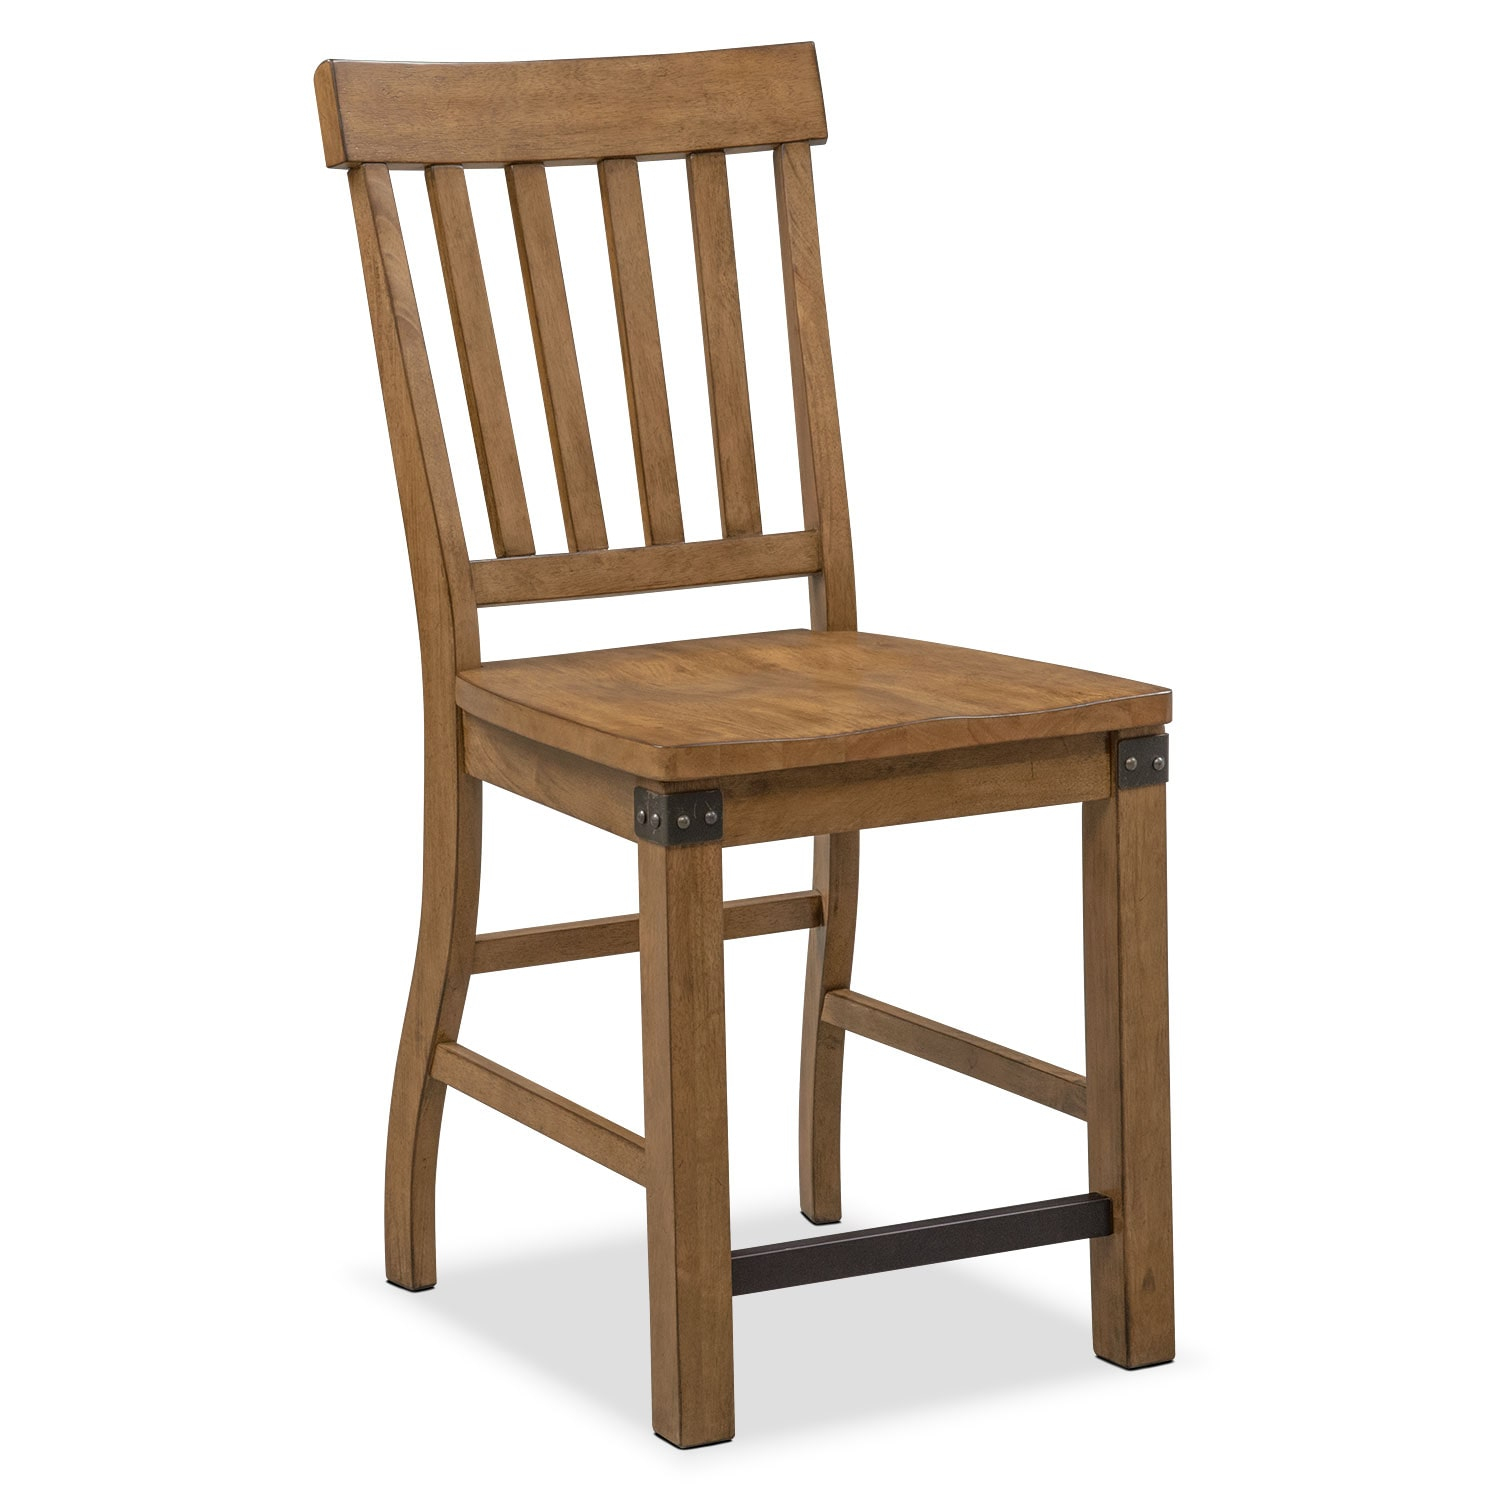 Dining Room Furniture - Salem Counter-Height Chair - Pecan